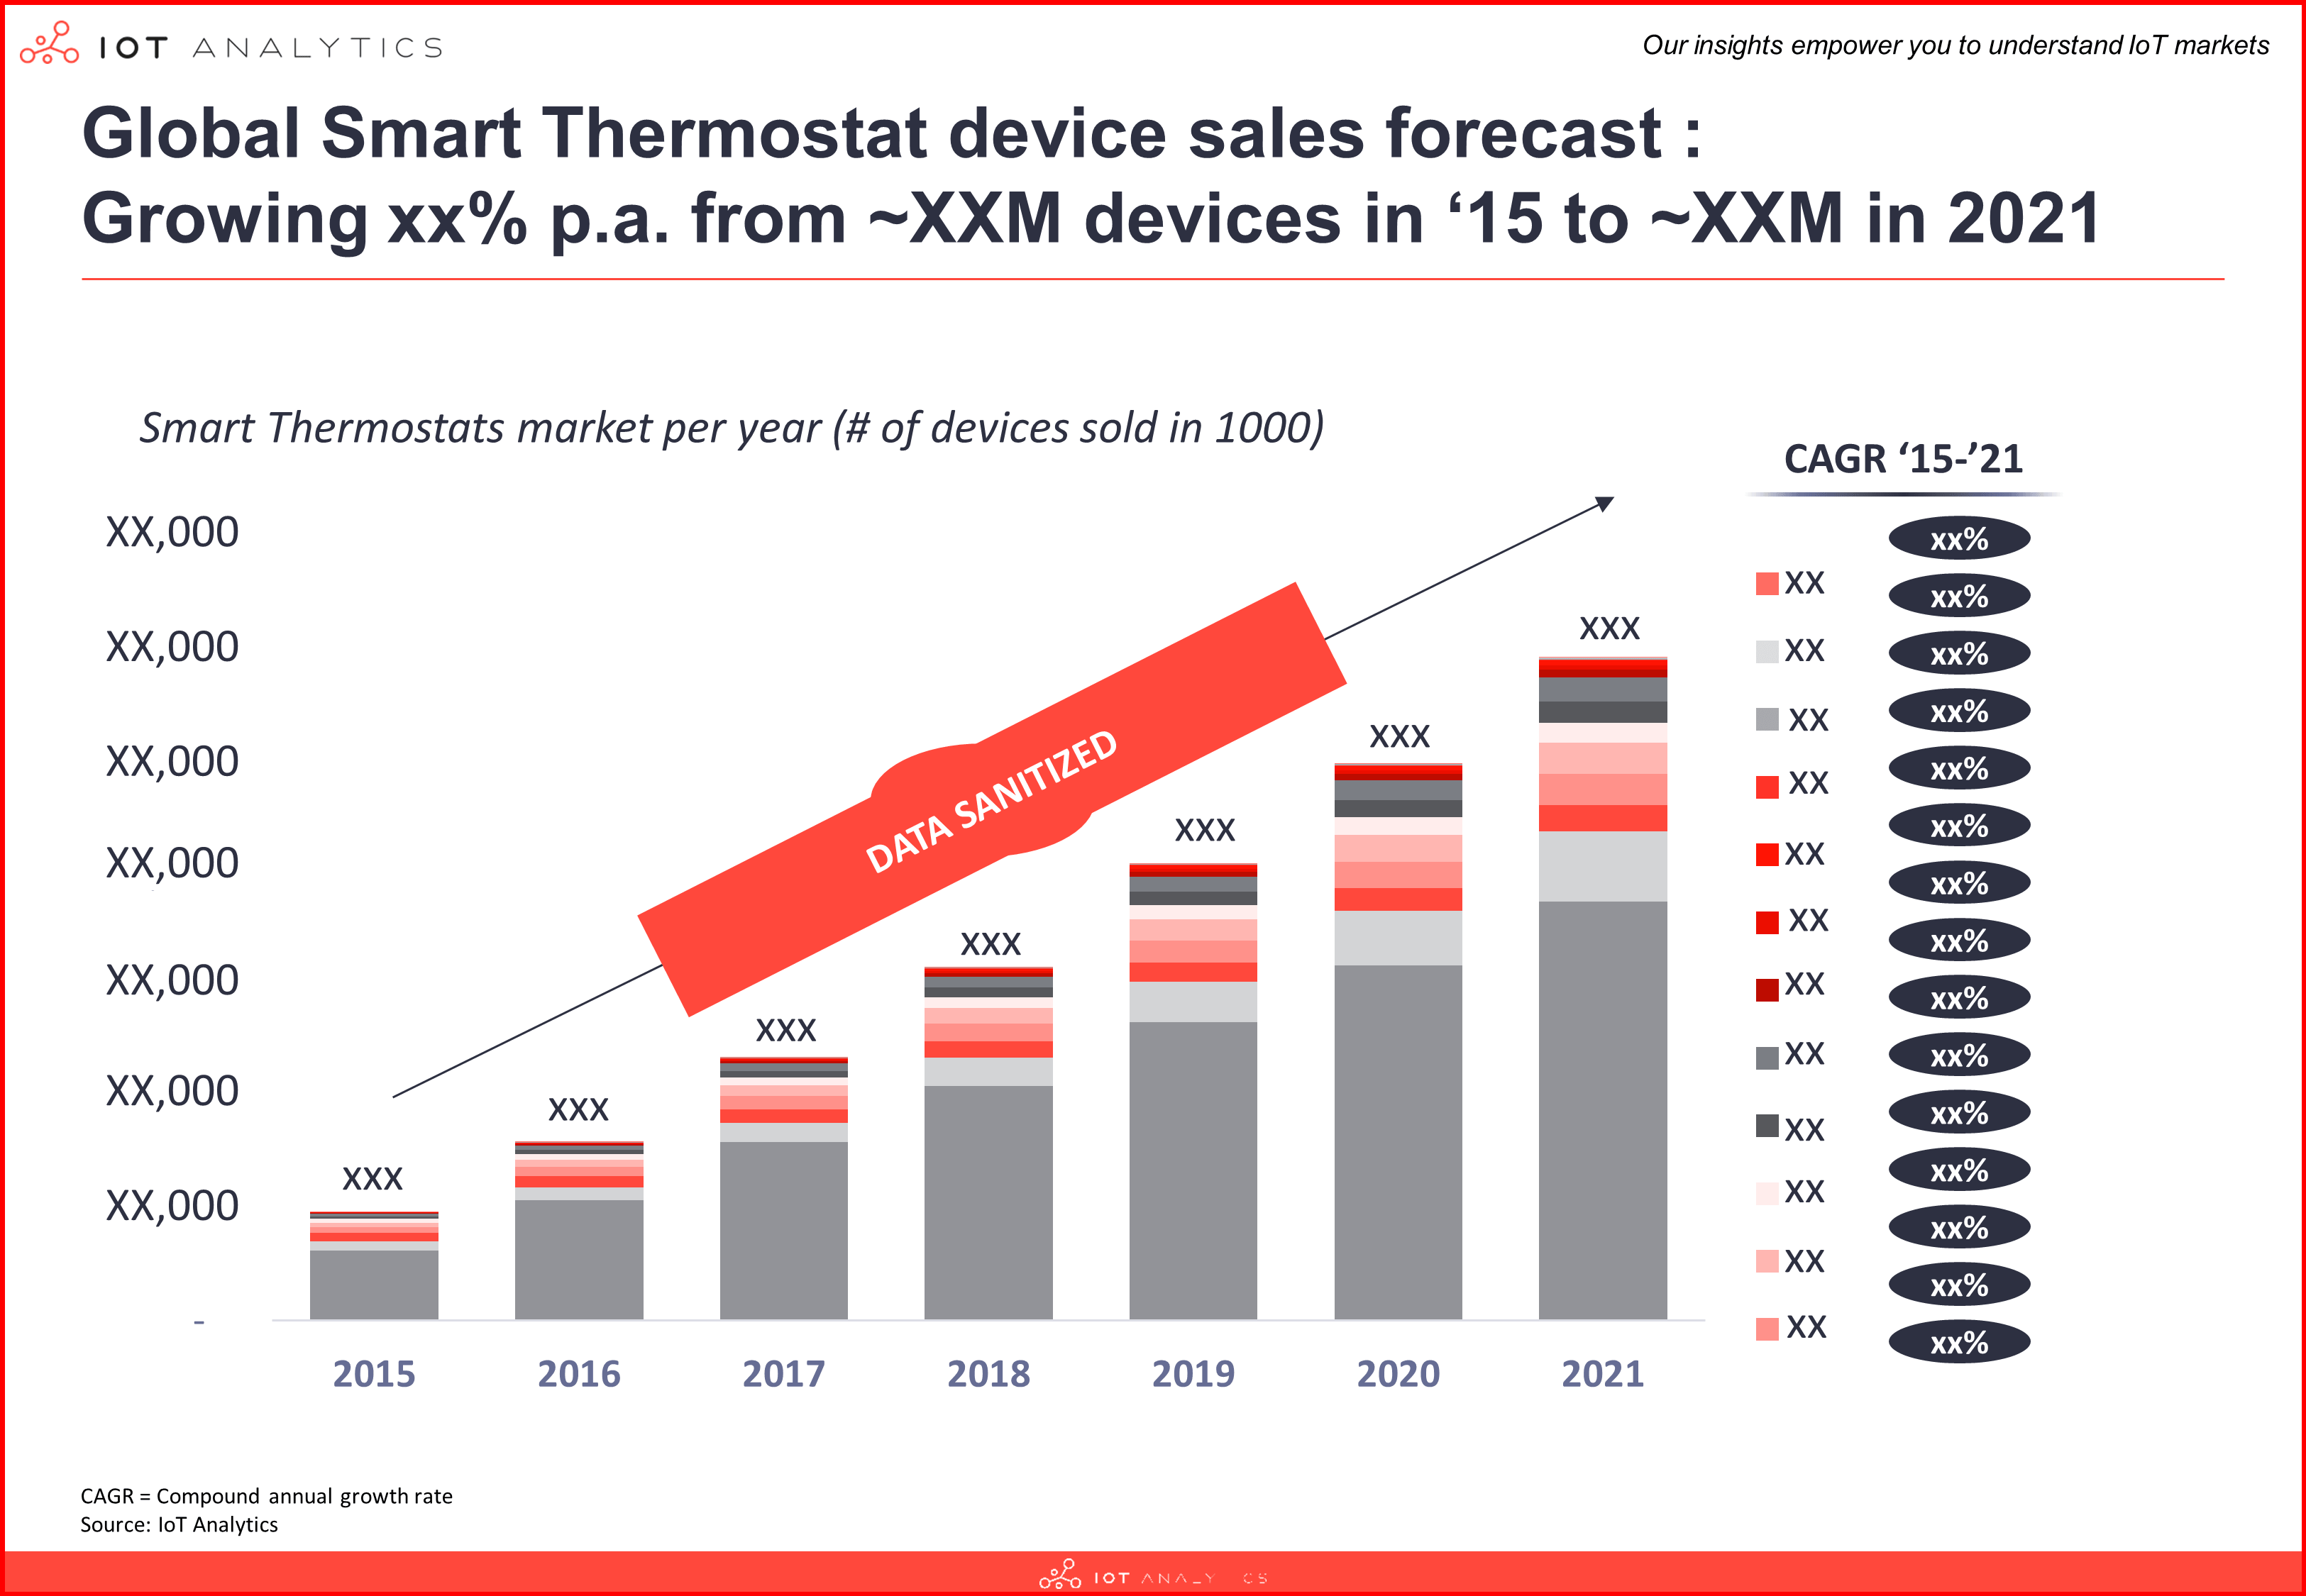 Smart Thermostat Market 2015 - 2021 Device Sales